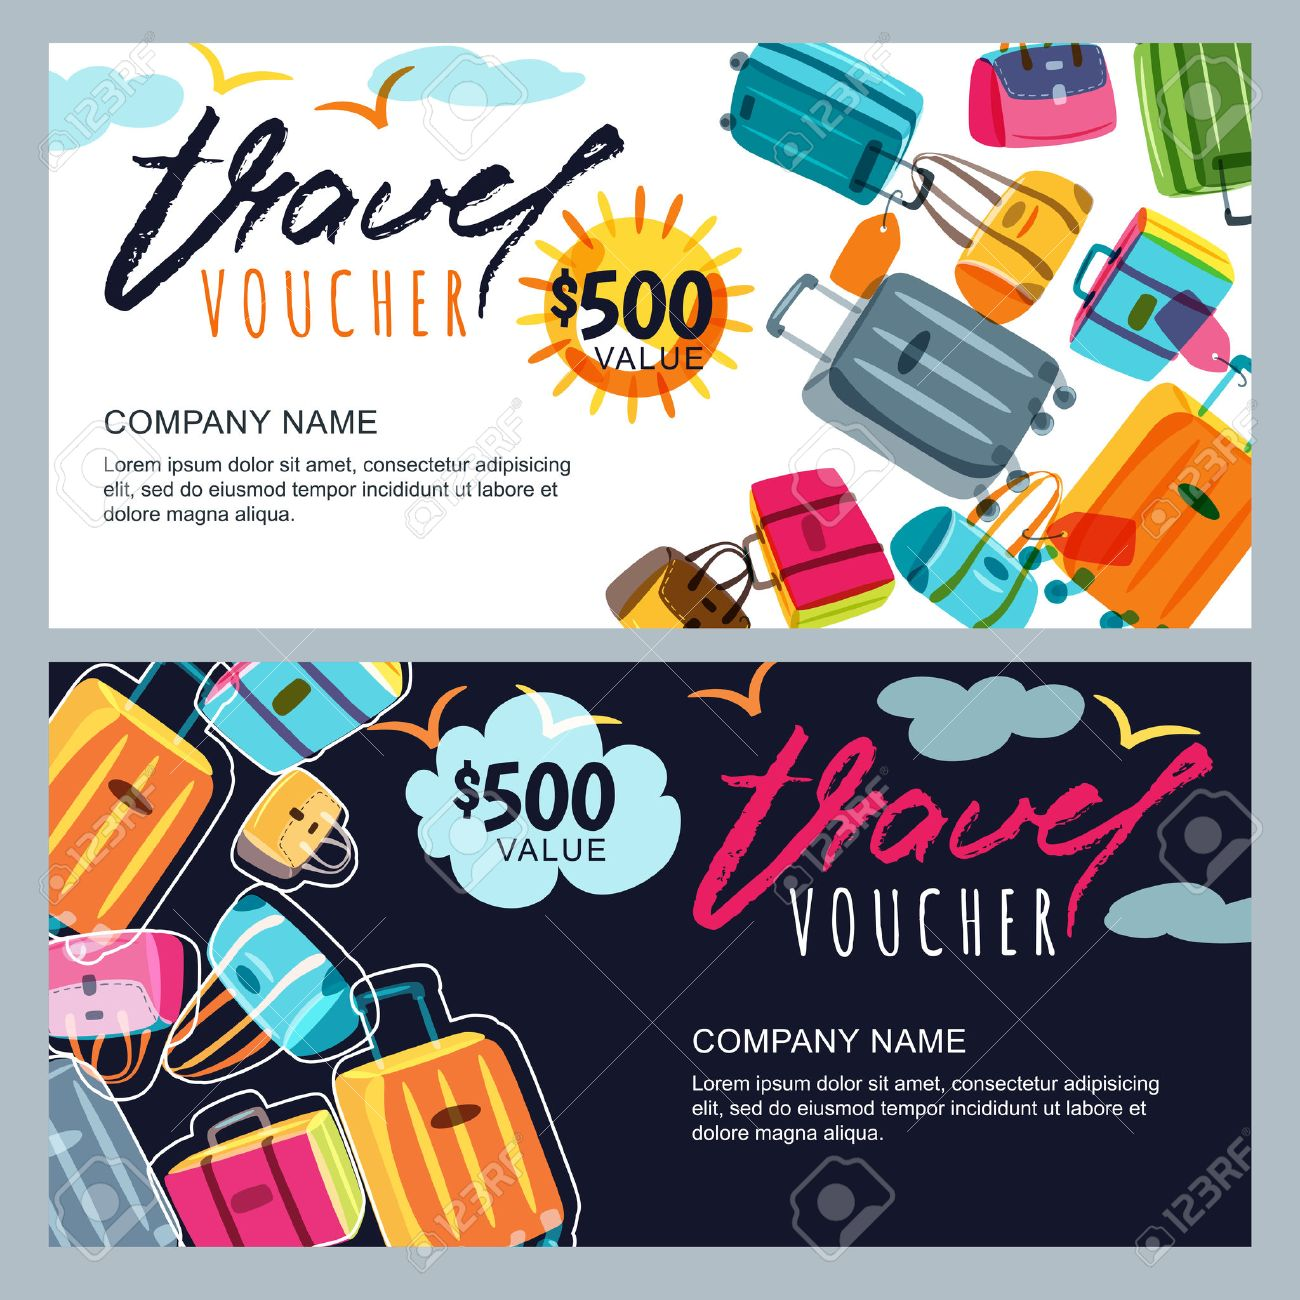 Vector gift travel voucher template multicolor luggage suitcase vector gift travel voucher template multicolor luggage suitcase bags concept for summer yelopaper Choice Image